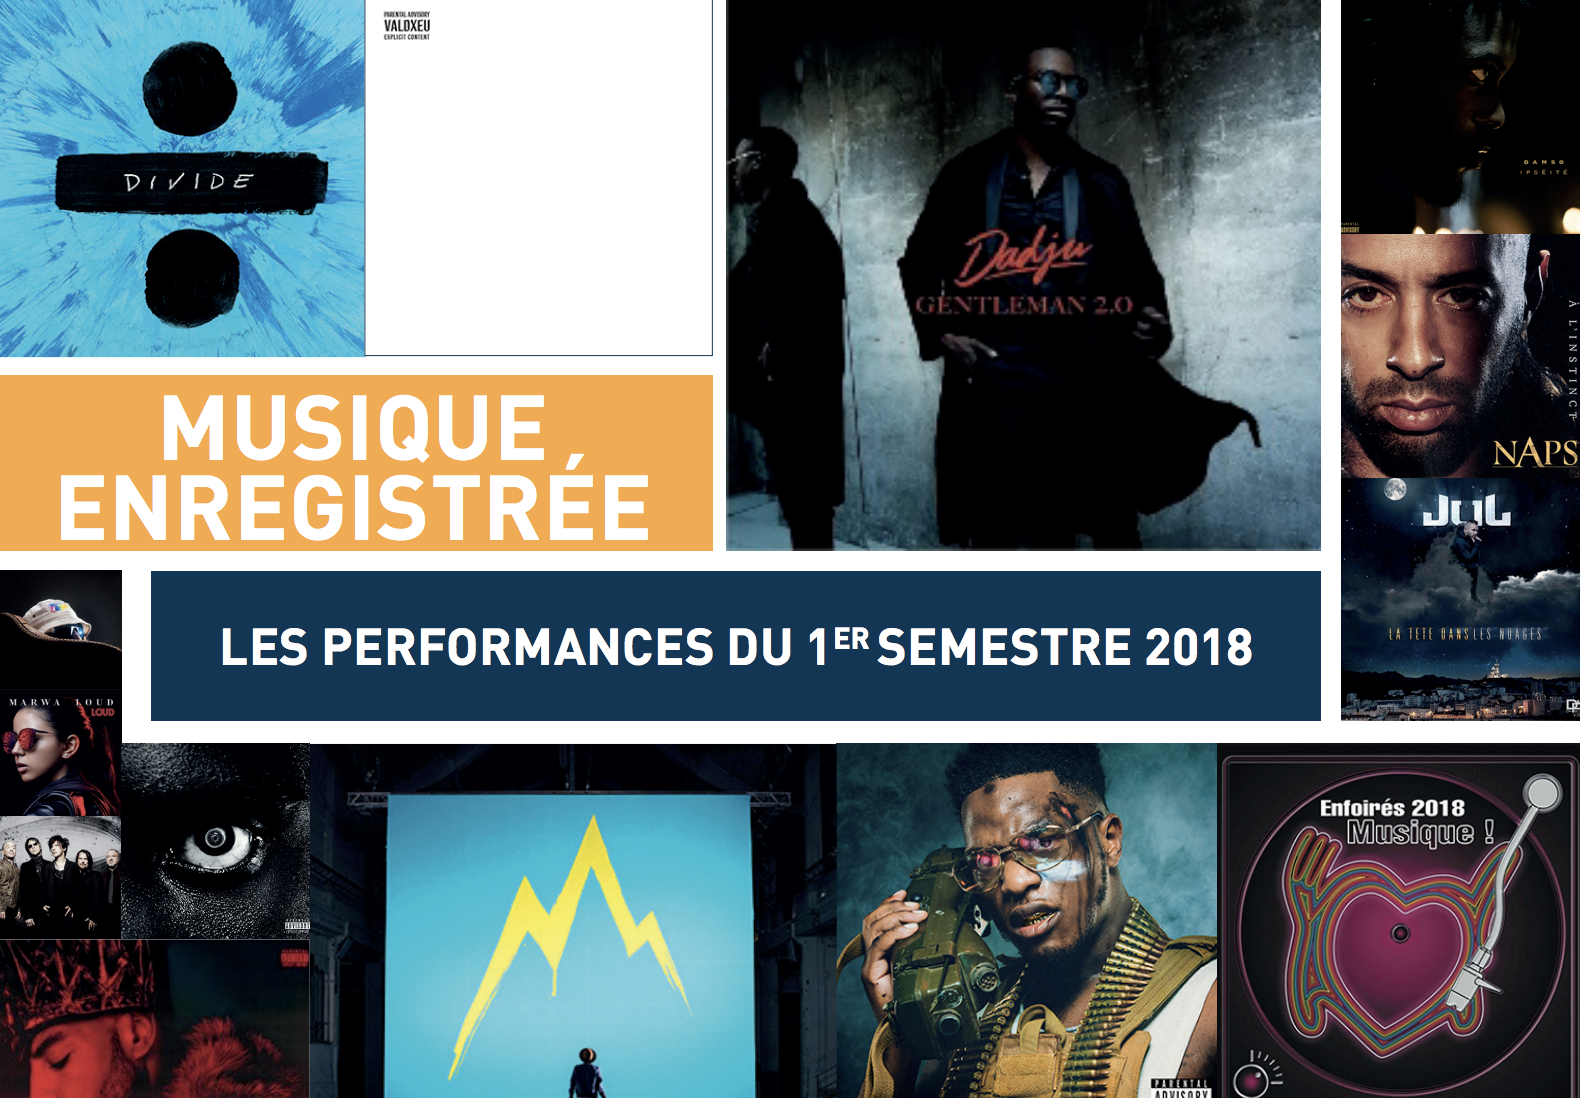 La production française performe au 1er semestre 2018, selon le SNEP.